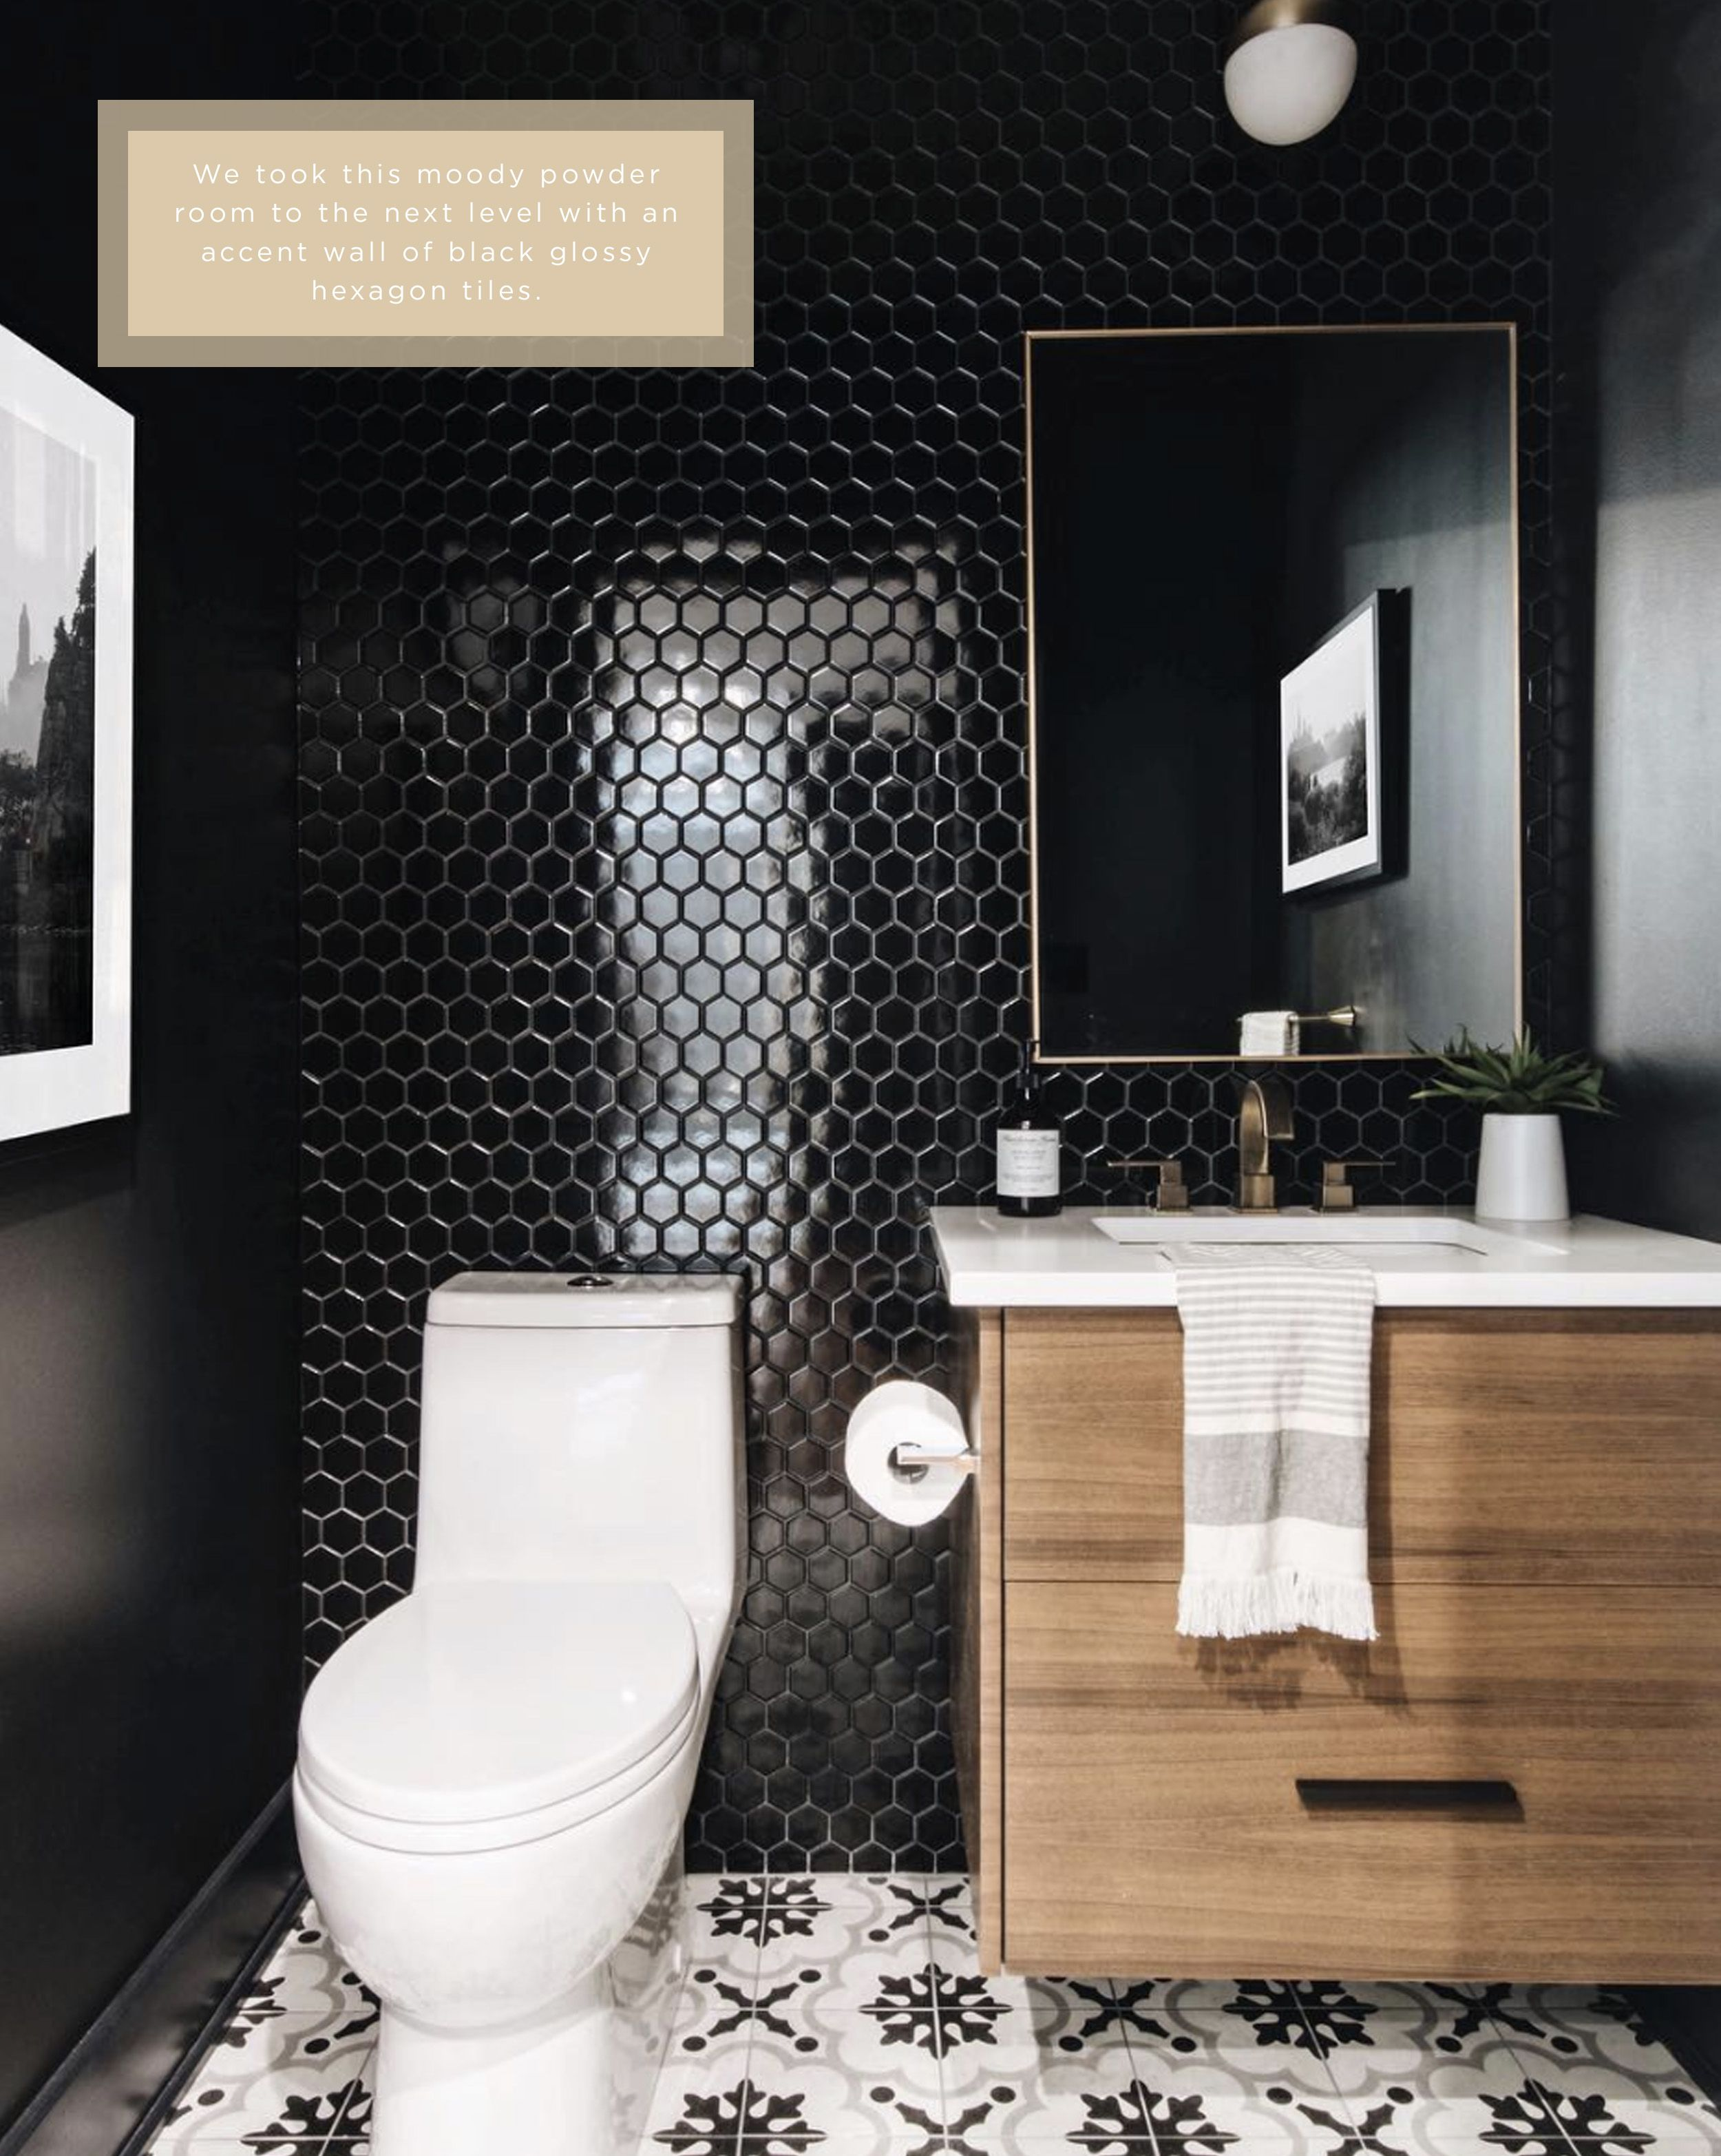 Statement Powder Room With Accent Wall Of Glossy Black Hexagon Tiles By Ottawa Interior Design Firm Le Modern Powder Rooms Black Powder Room Black Hexagon Tile